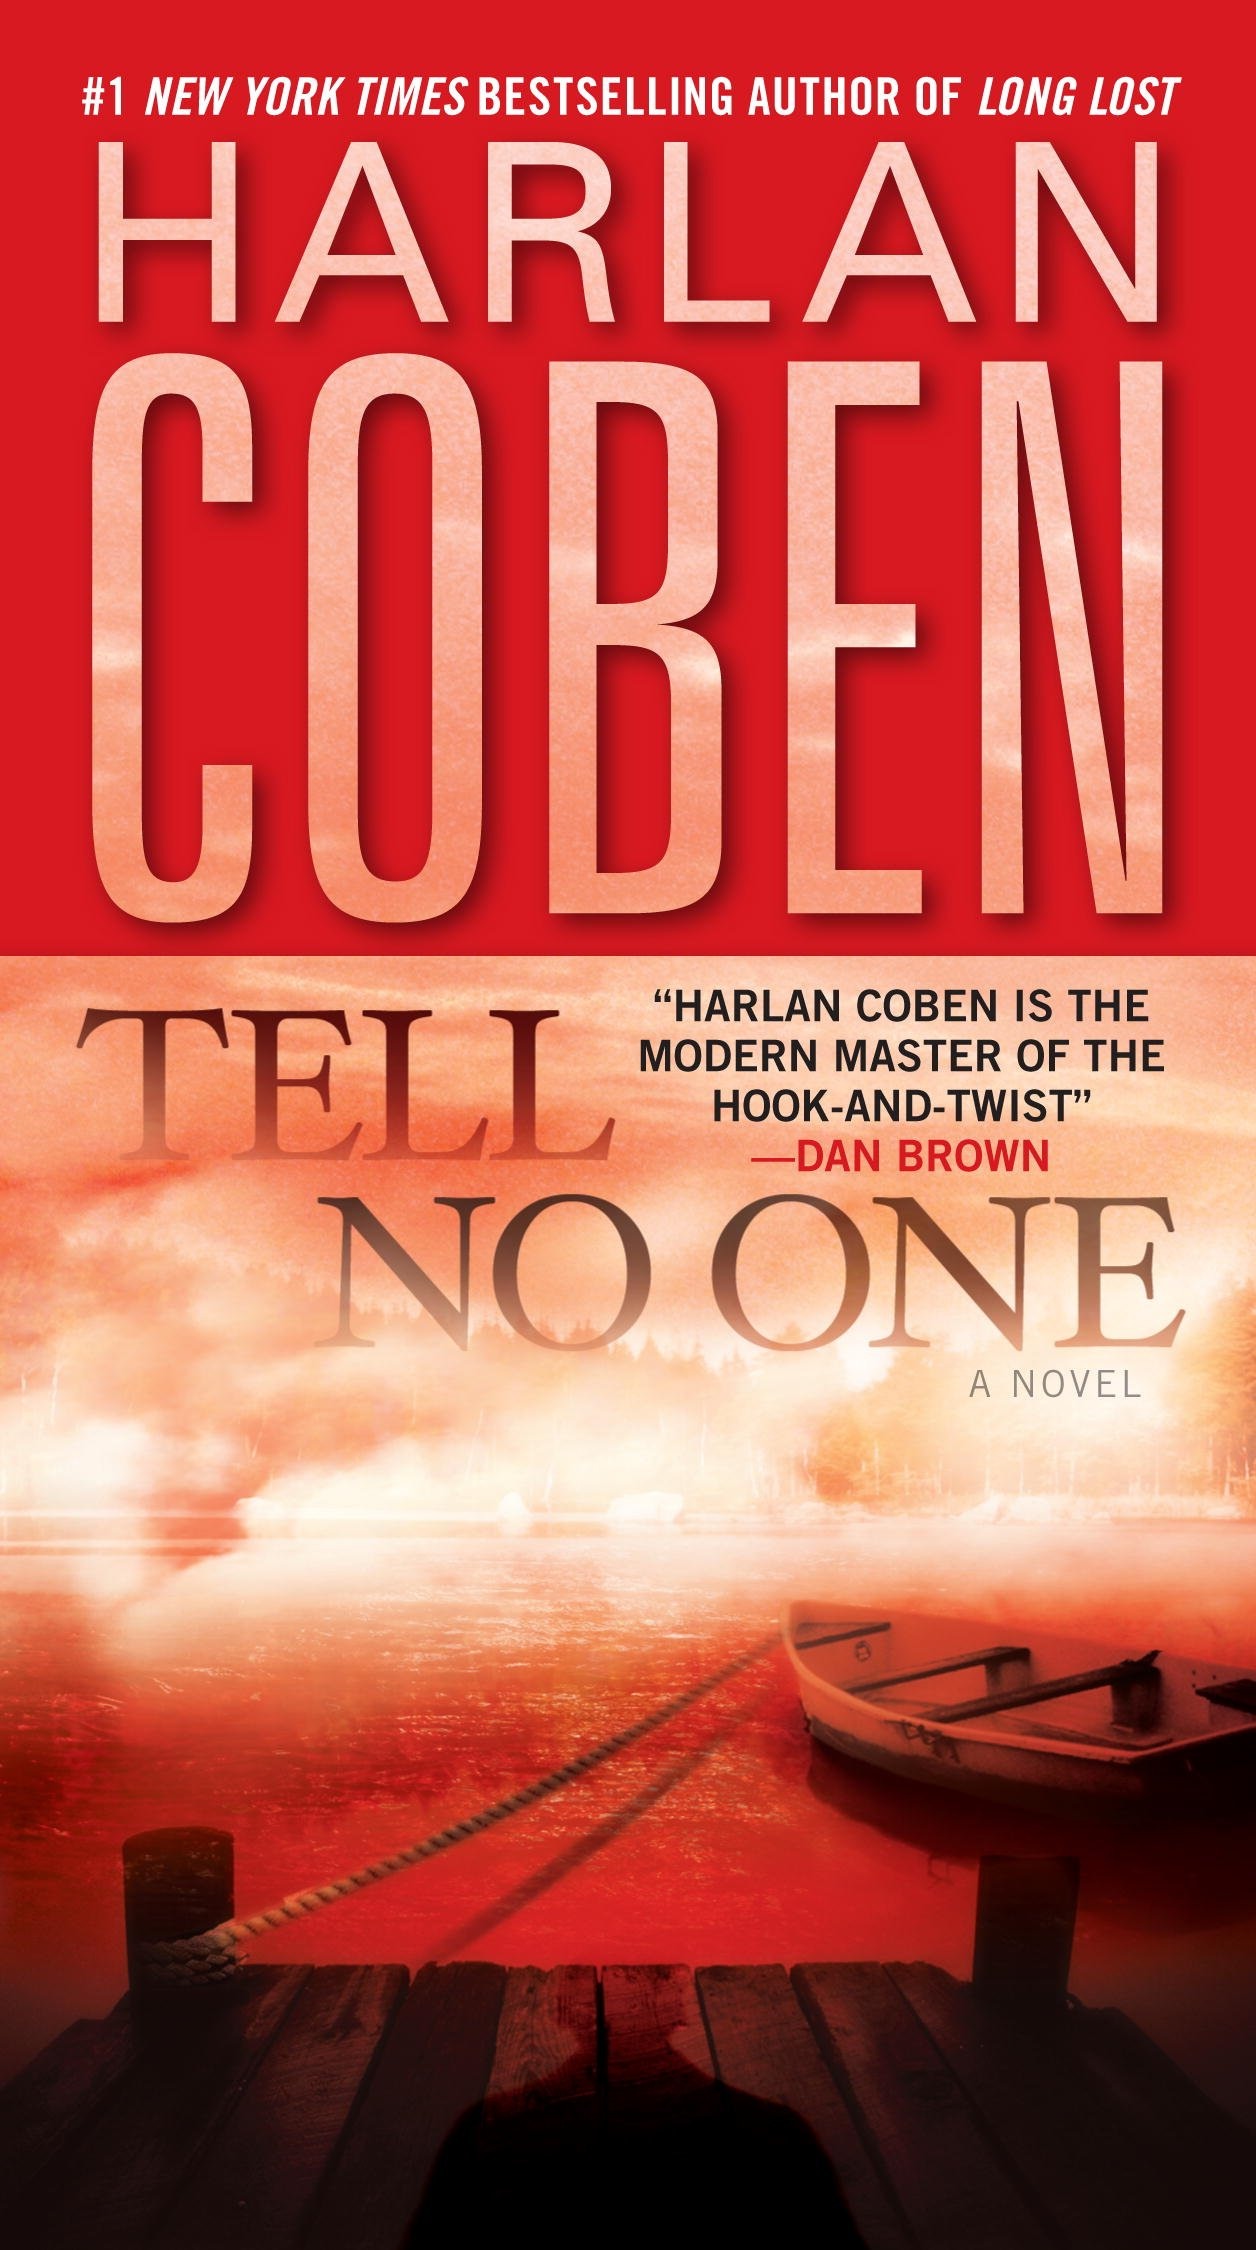 Tell No One: A Novel - Harlan Coben